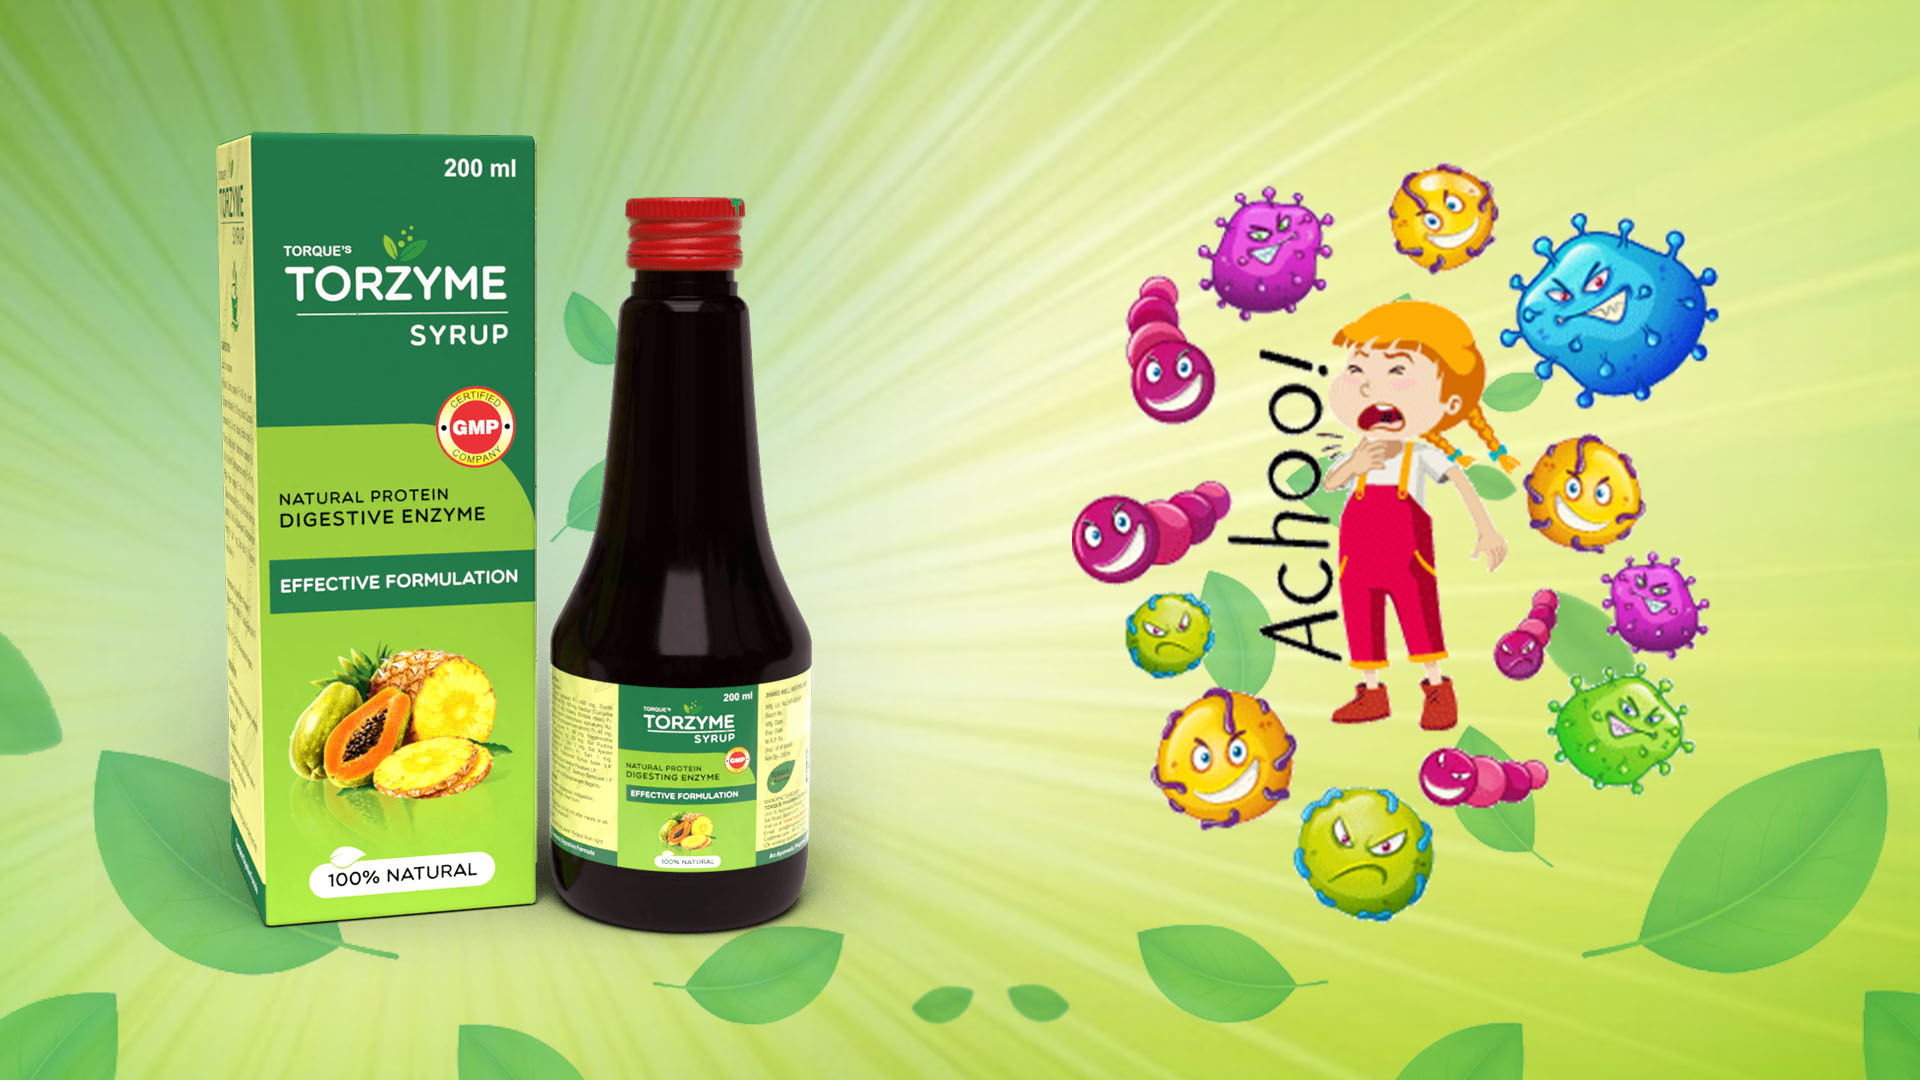 best syrup for digestive system